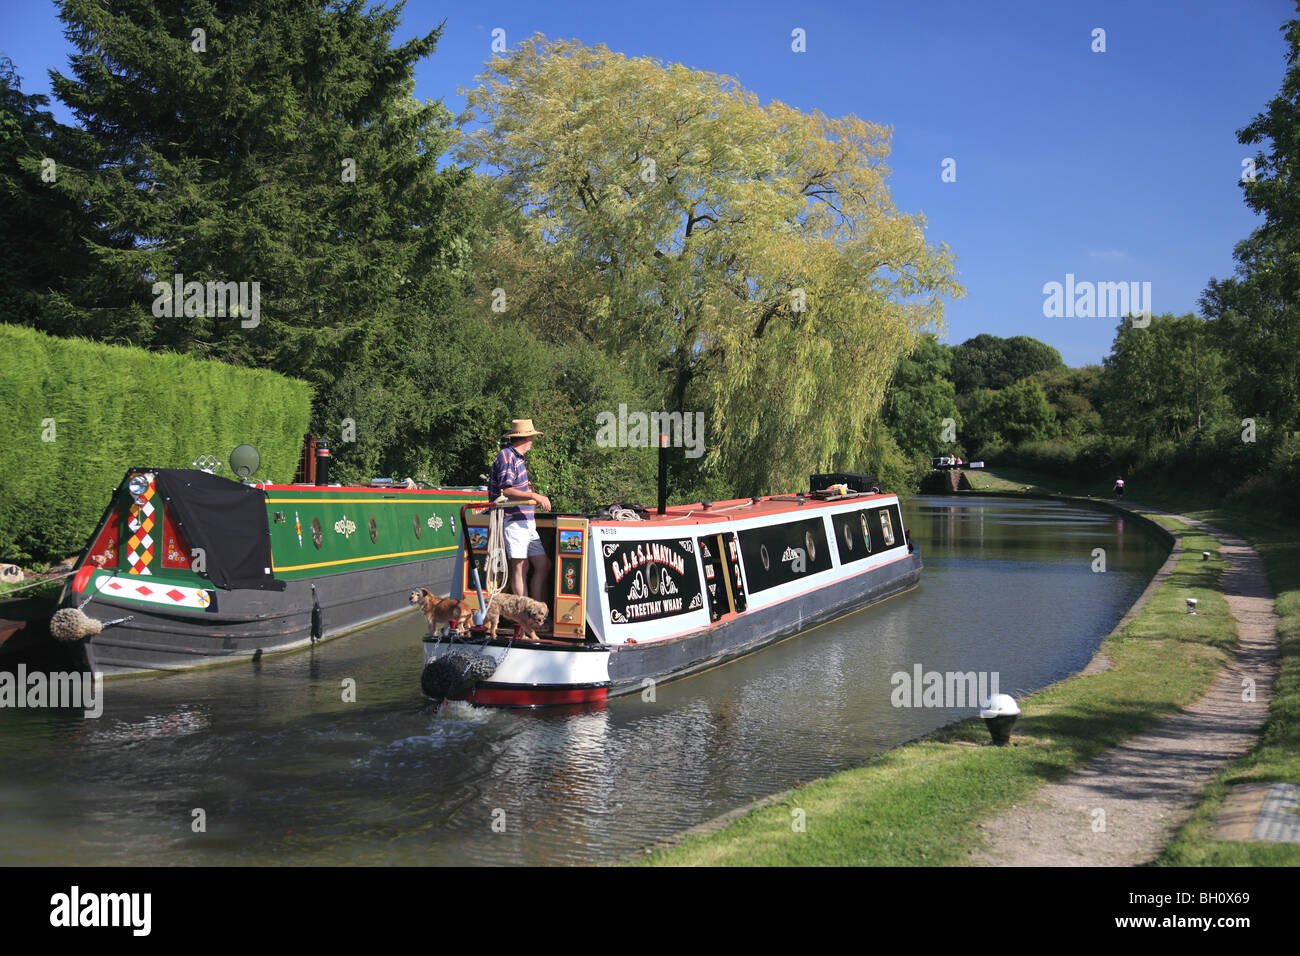 Holiday cruising on the Grand Union Canal between locks 3 and 4 at Braunston, Northamptonshire - Stock Image